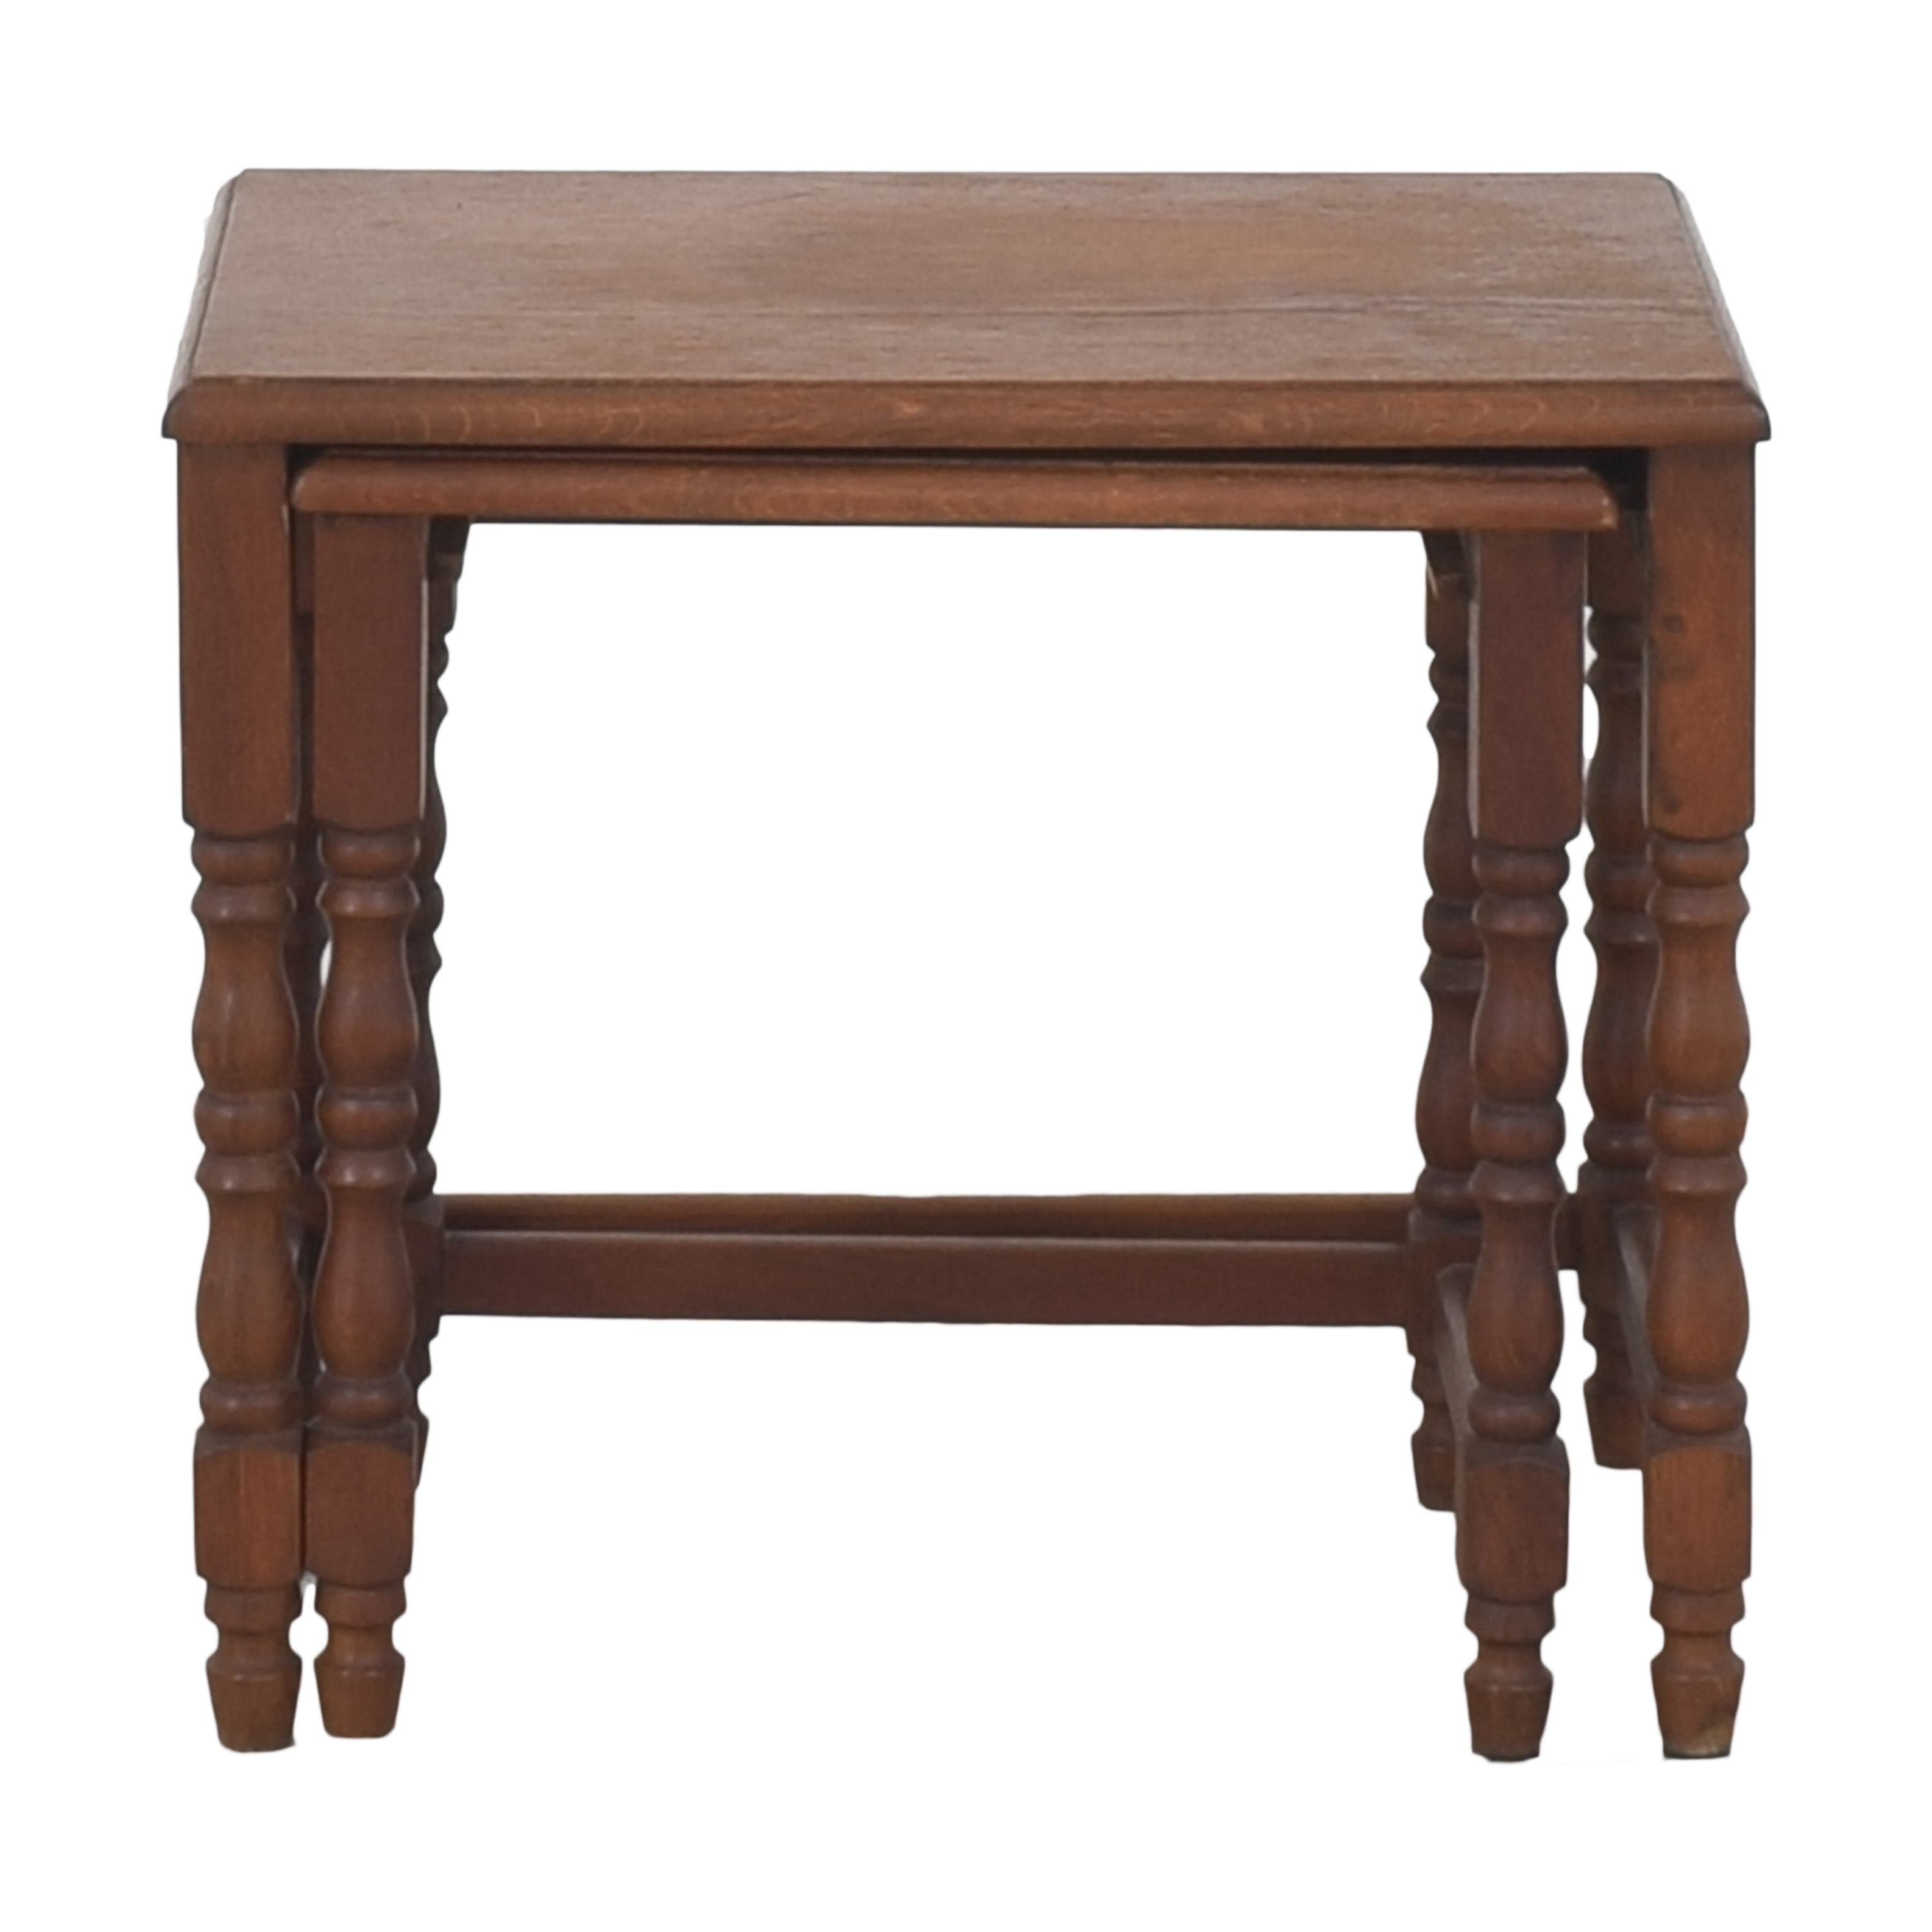 Antique Nesting End Tables ma